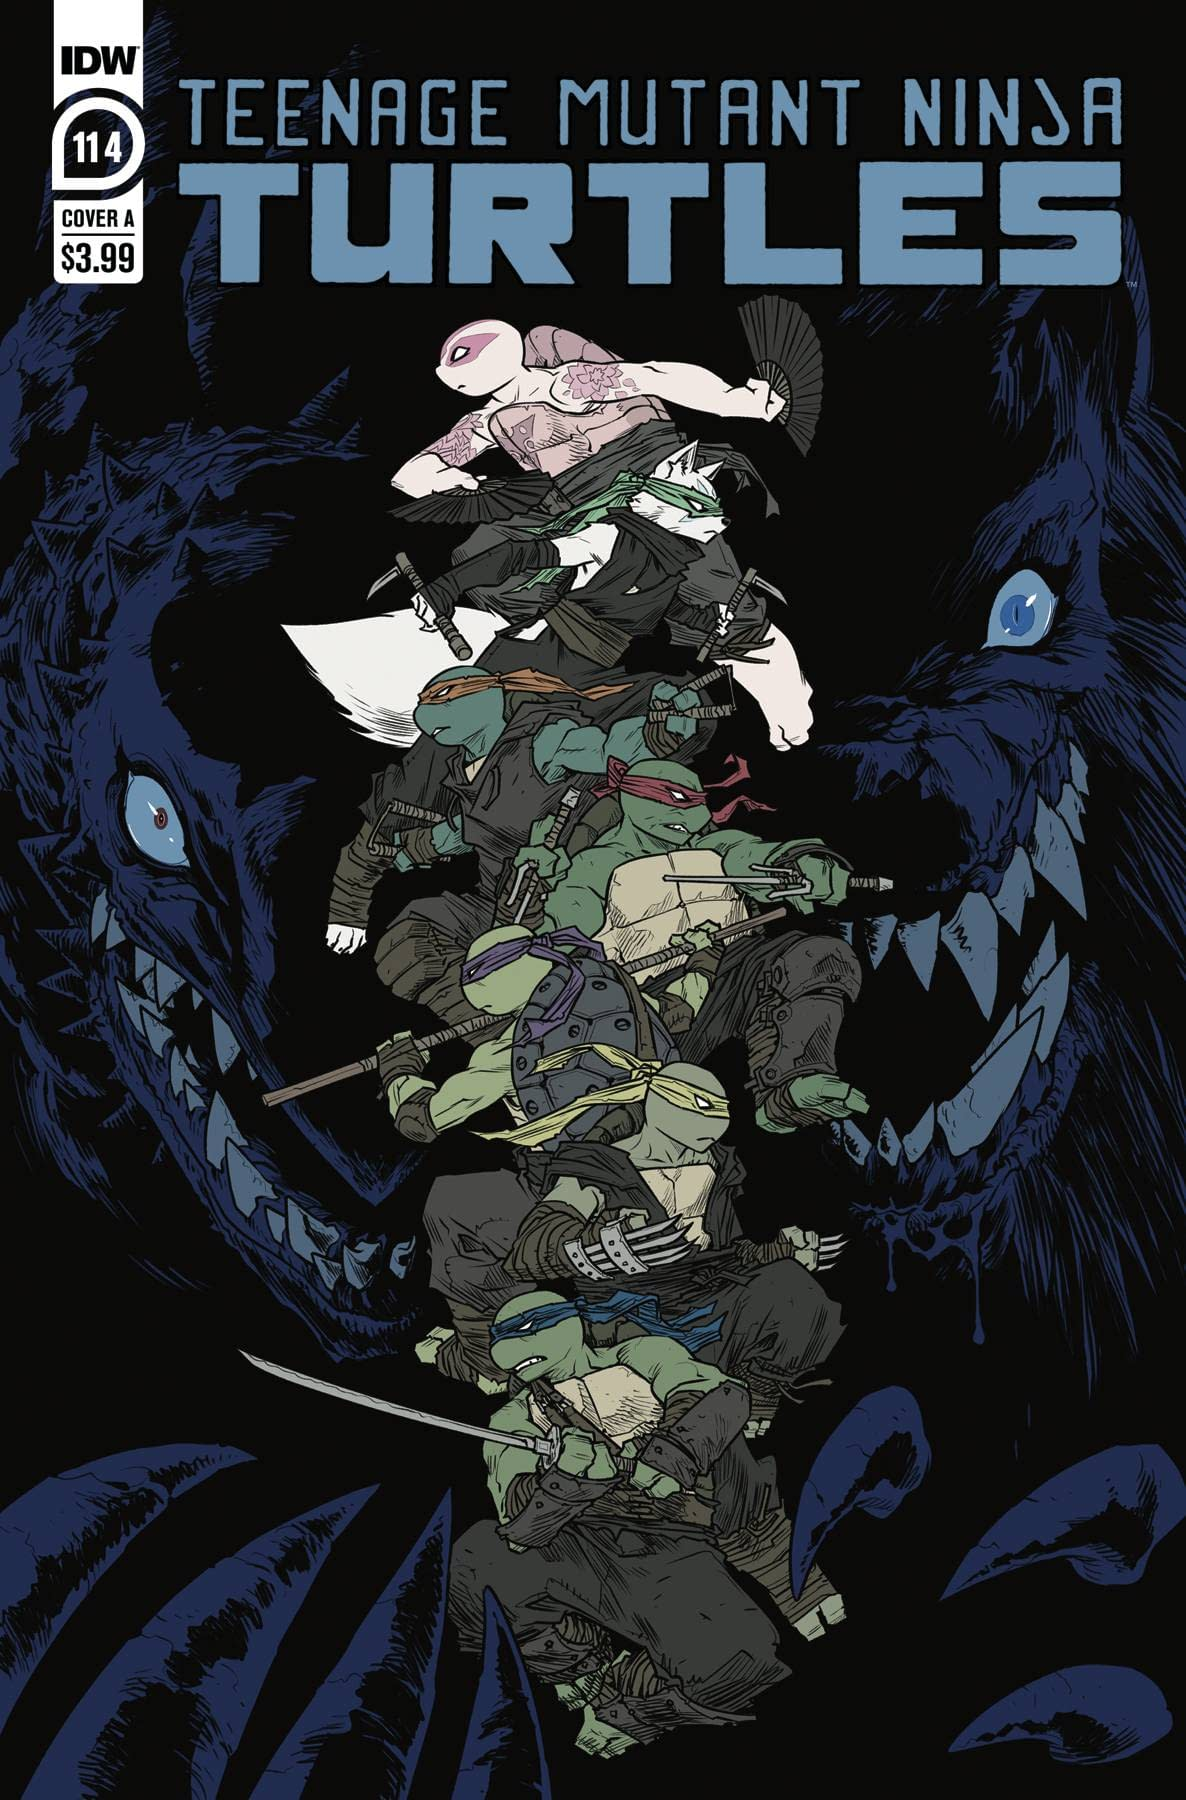 IDW TMNT ONGOING #114 CVR A SOPHIE CAMPBELL